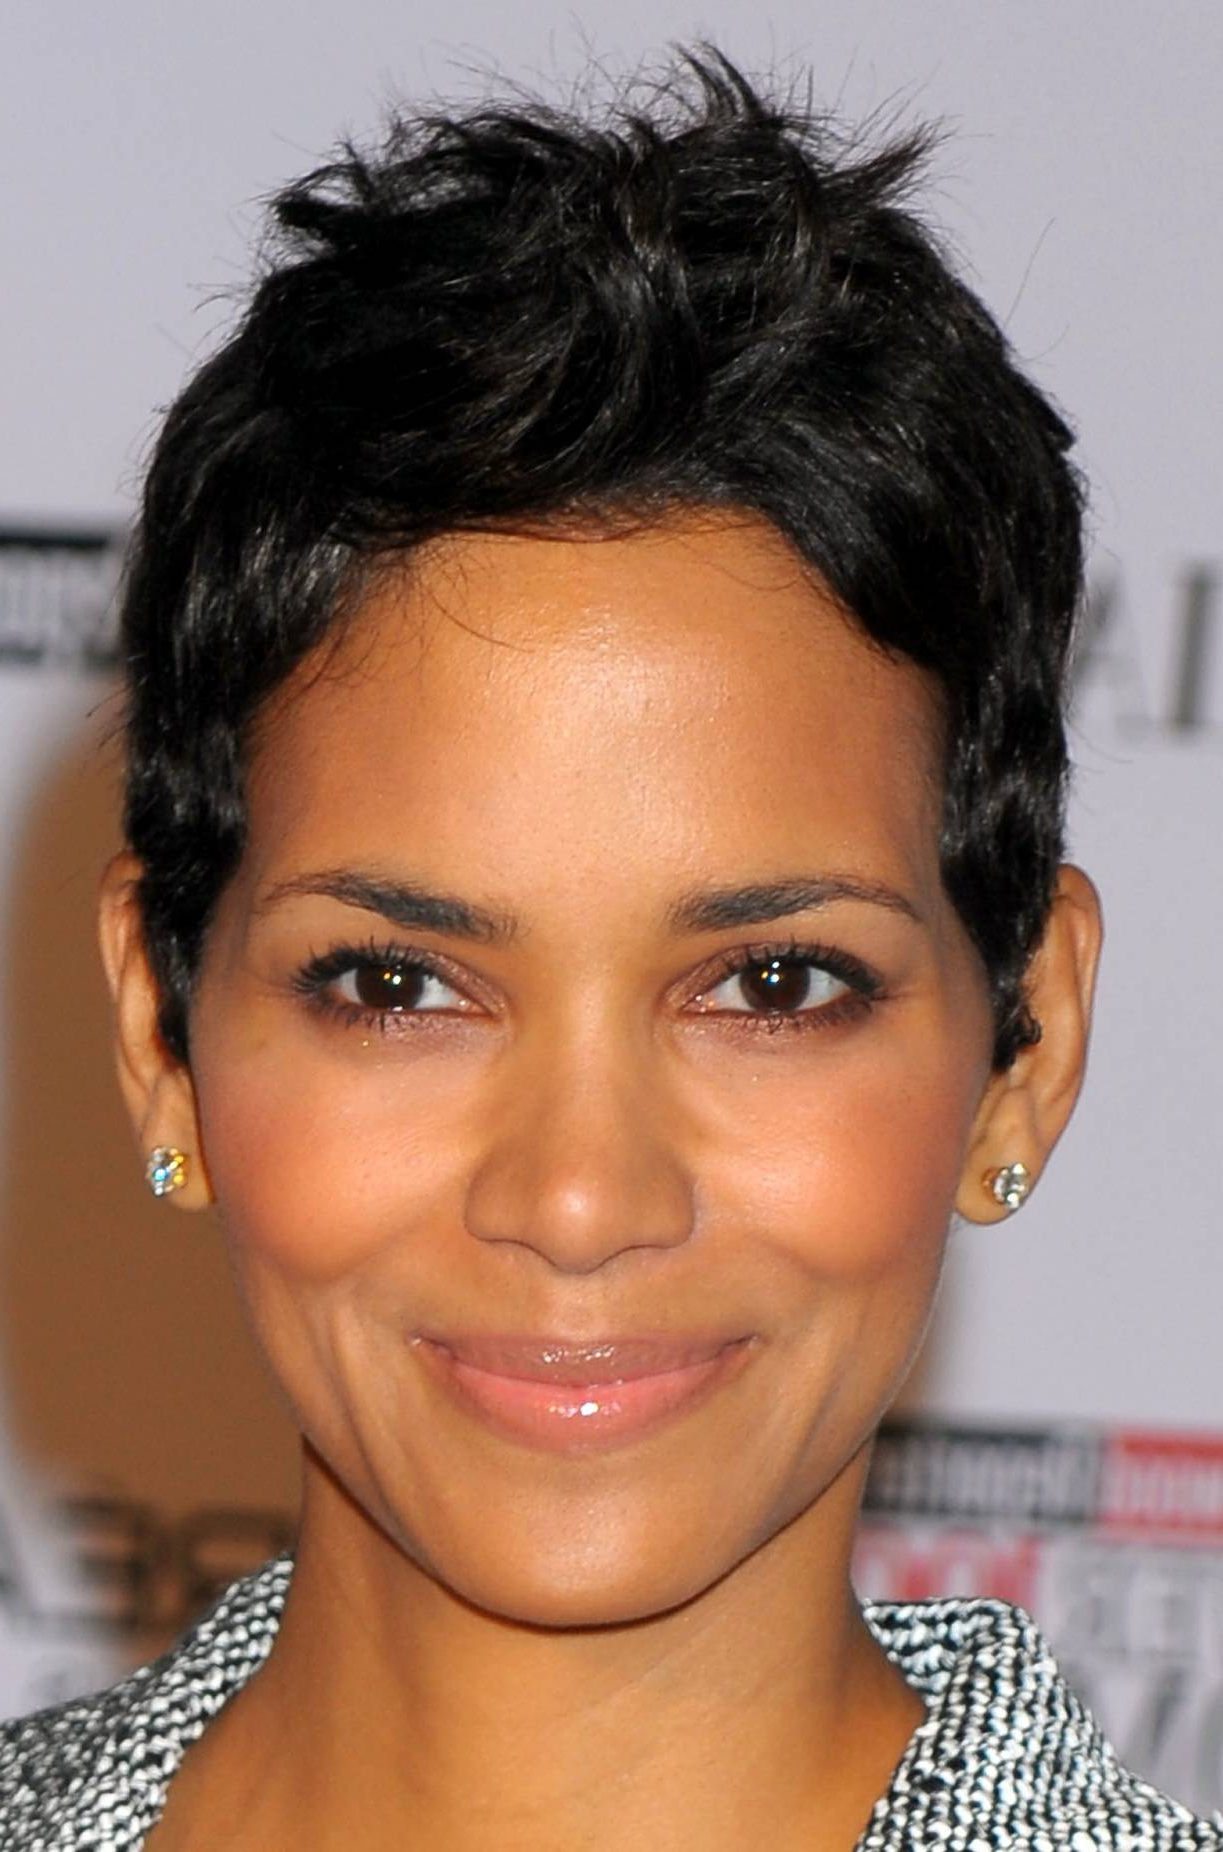 Black Short Hairstyles For Round Faces – Hairstyle For Women & Man Throughout Short Haircuts For Round Faces African American (View 13 of 25)